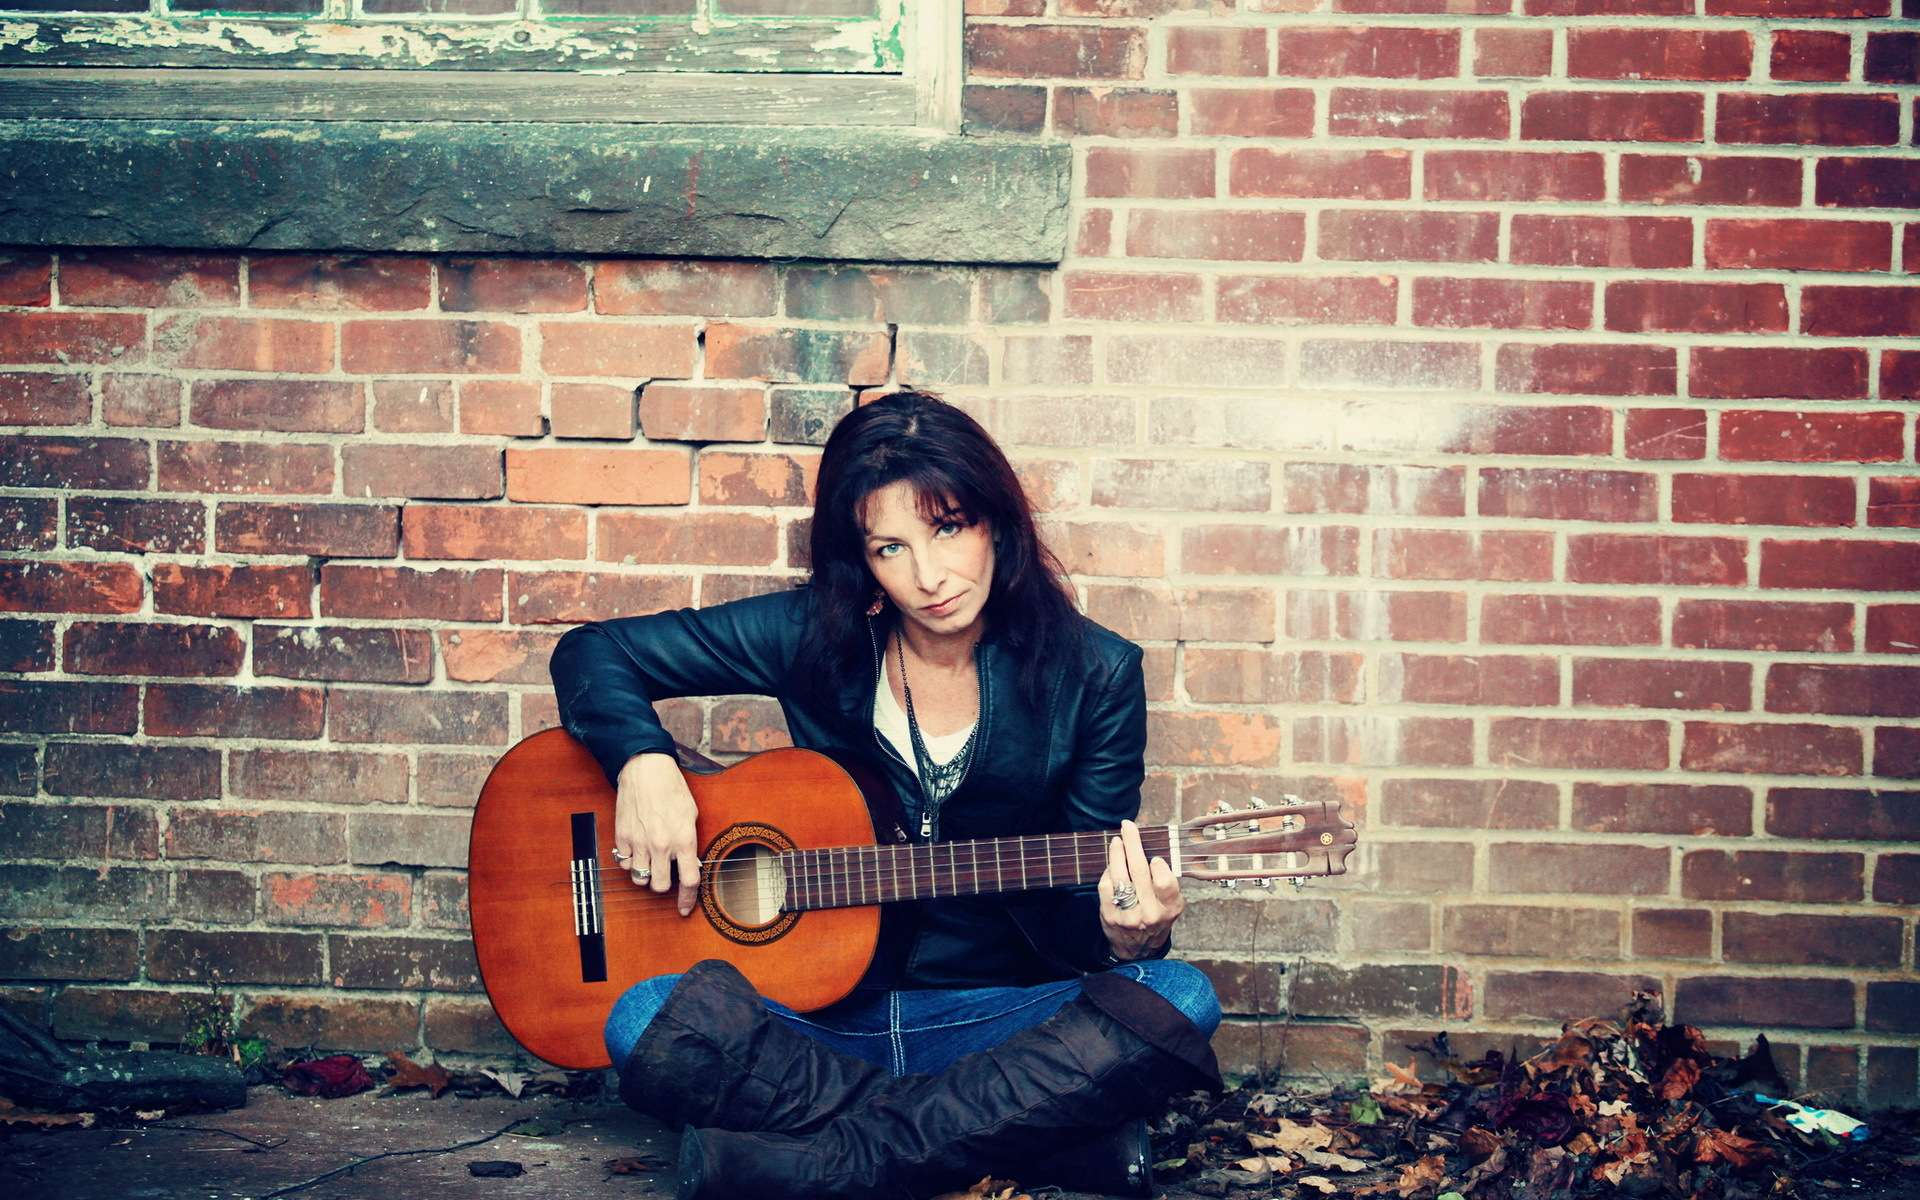 Girl With Guitar Hd Wallpapers 3 : Hd Wallpapers